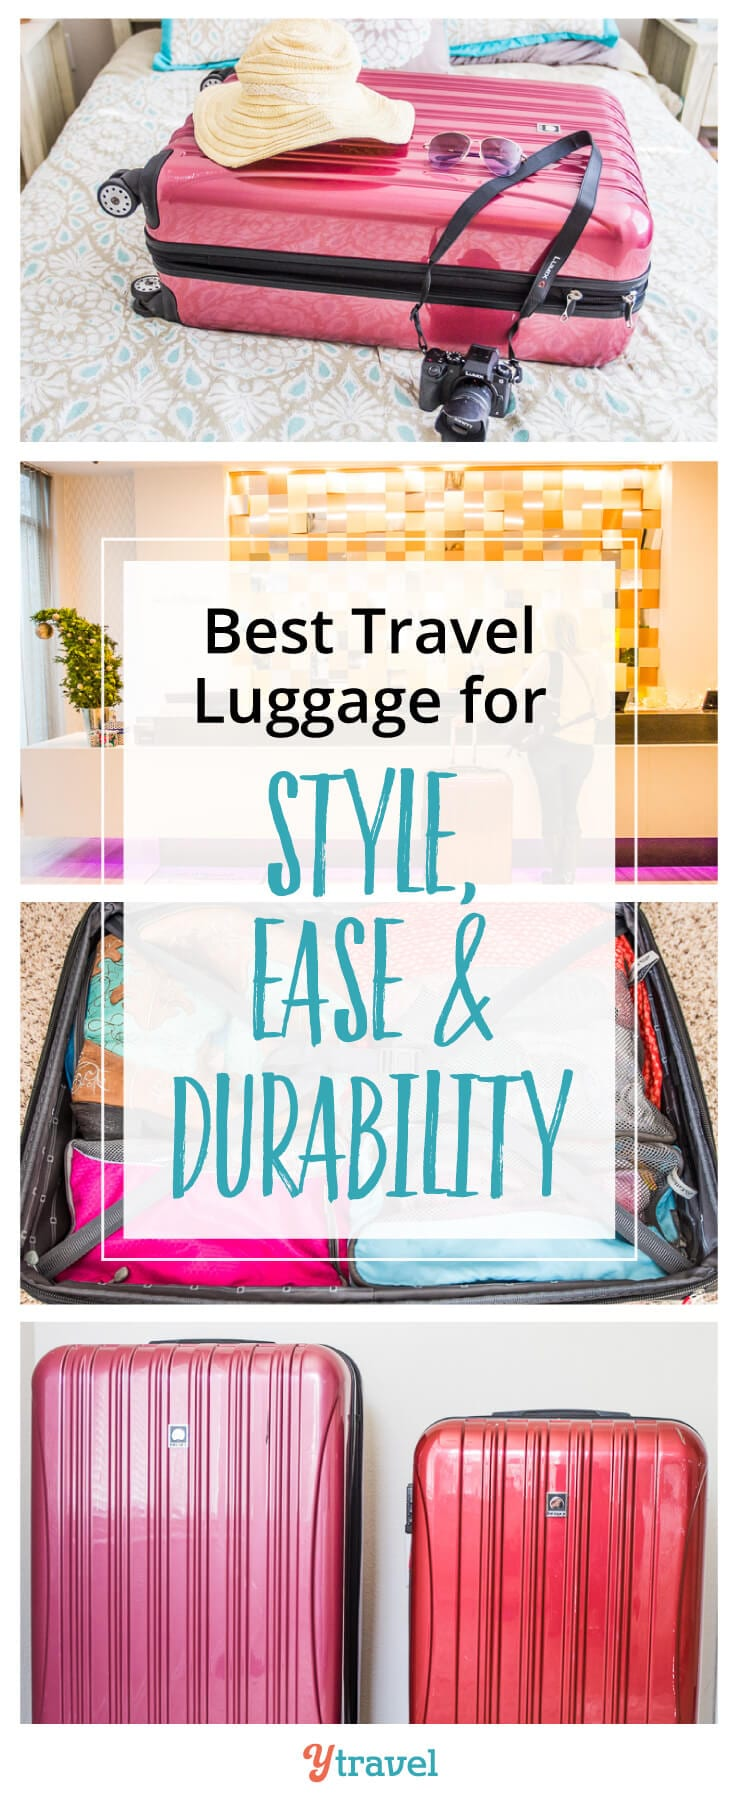 Delsey suitcase review - one of the best travel suitcases for style, ease, and durability.